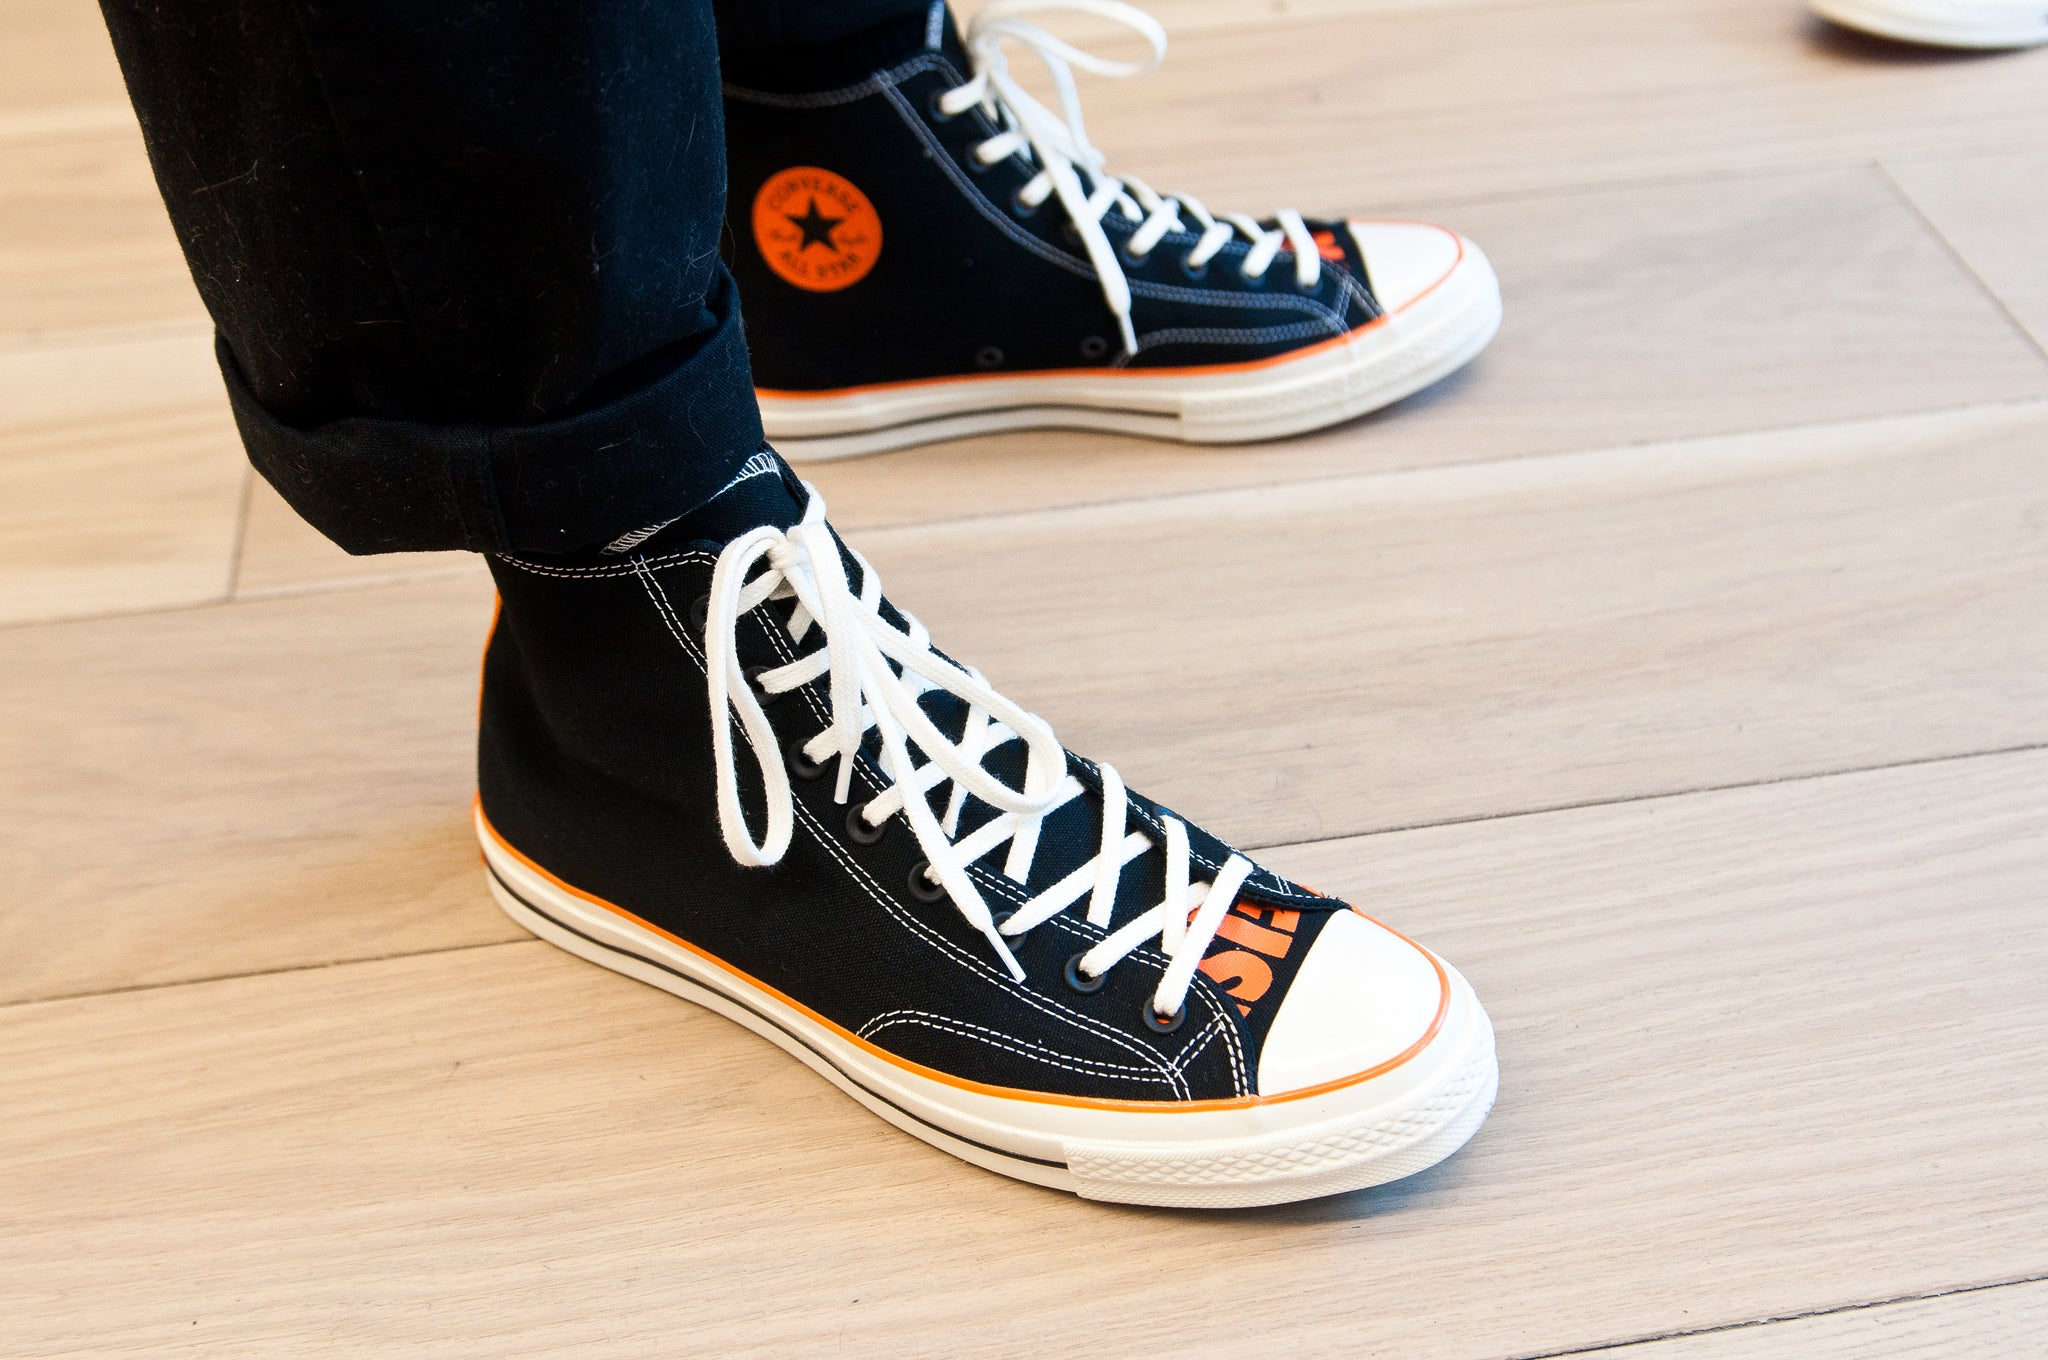 Vince Staples x Convese 1970s Chuck Taylor Collaboration 3